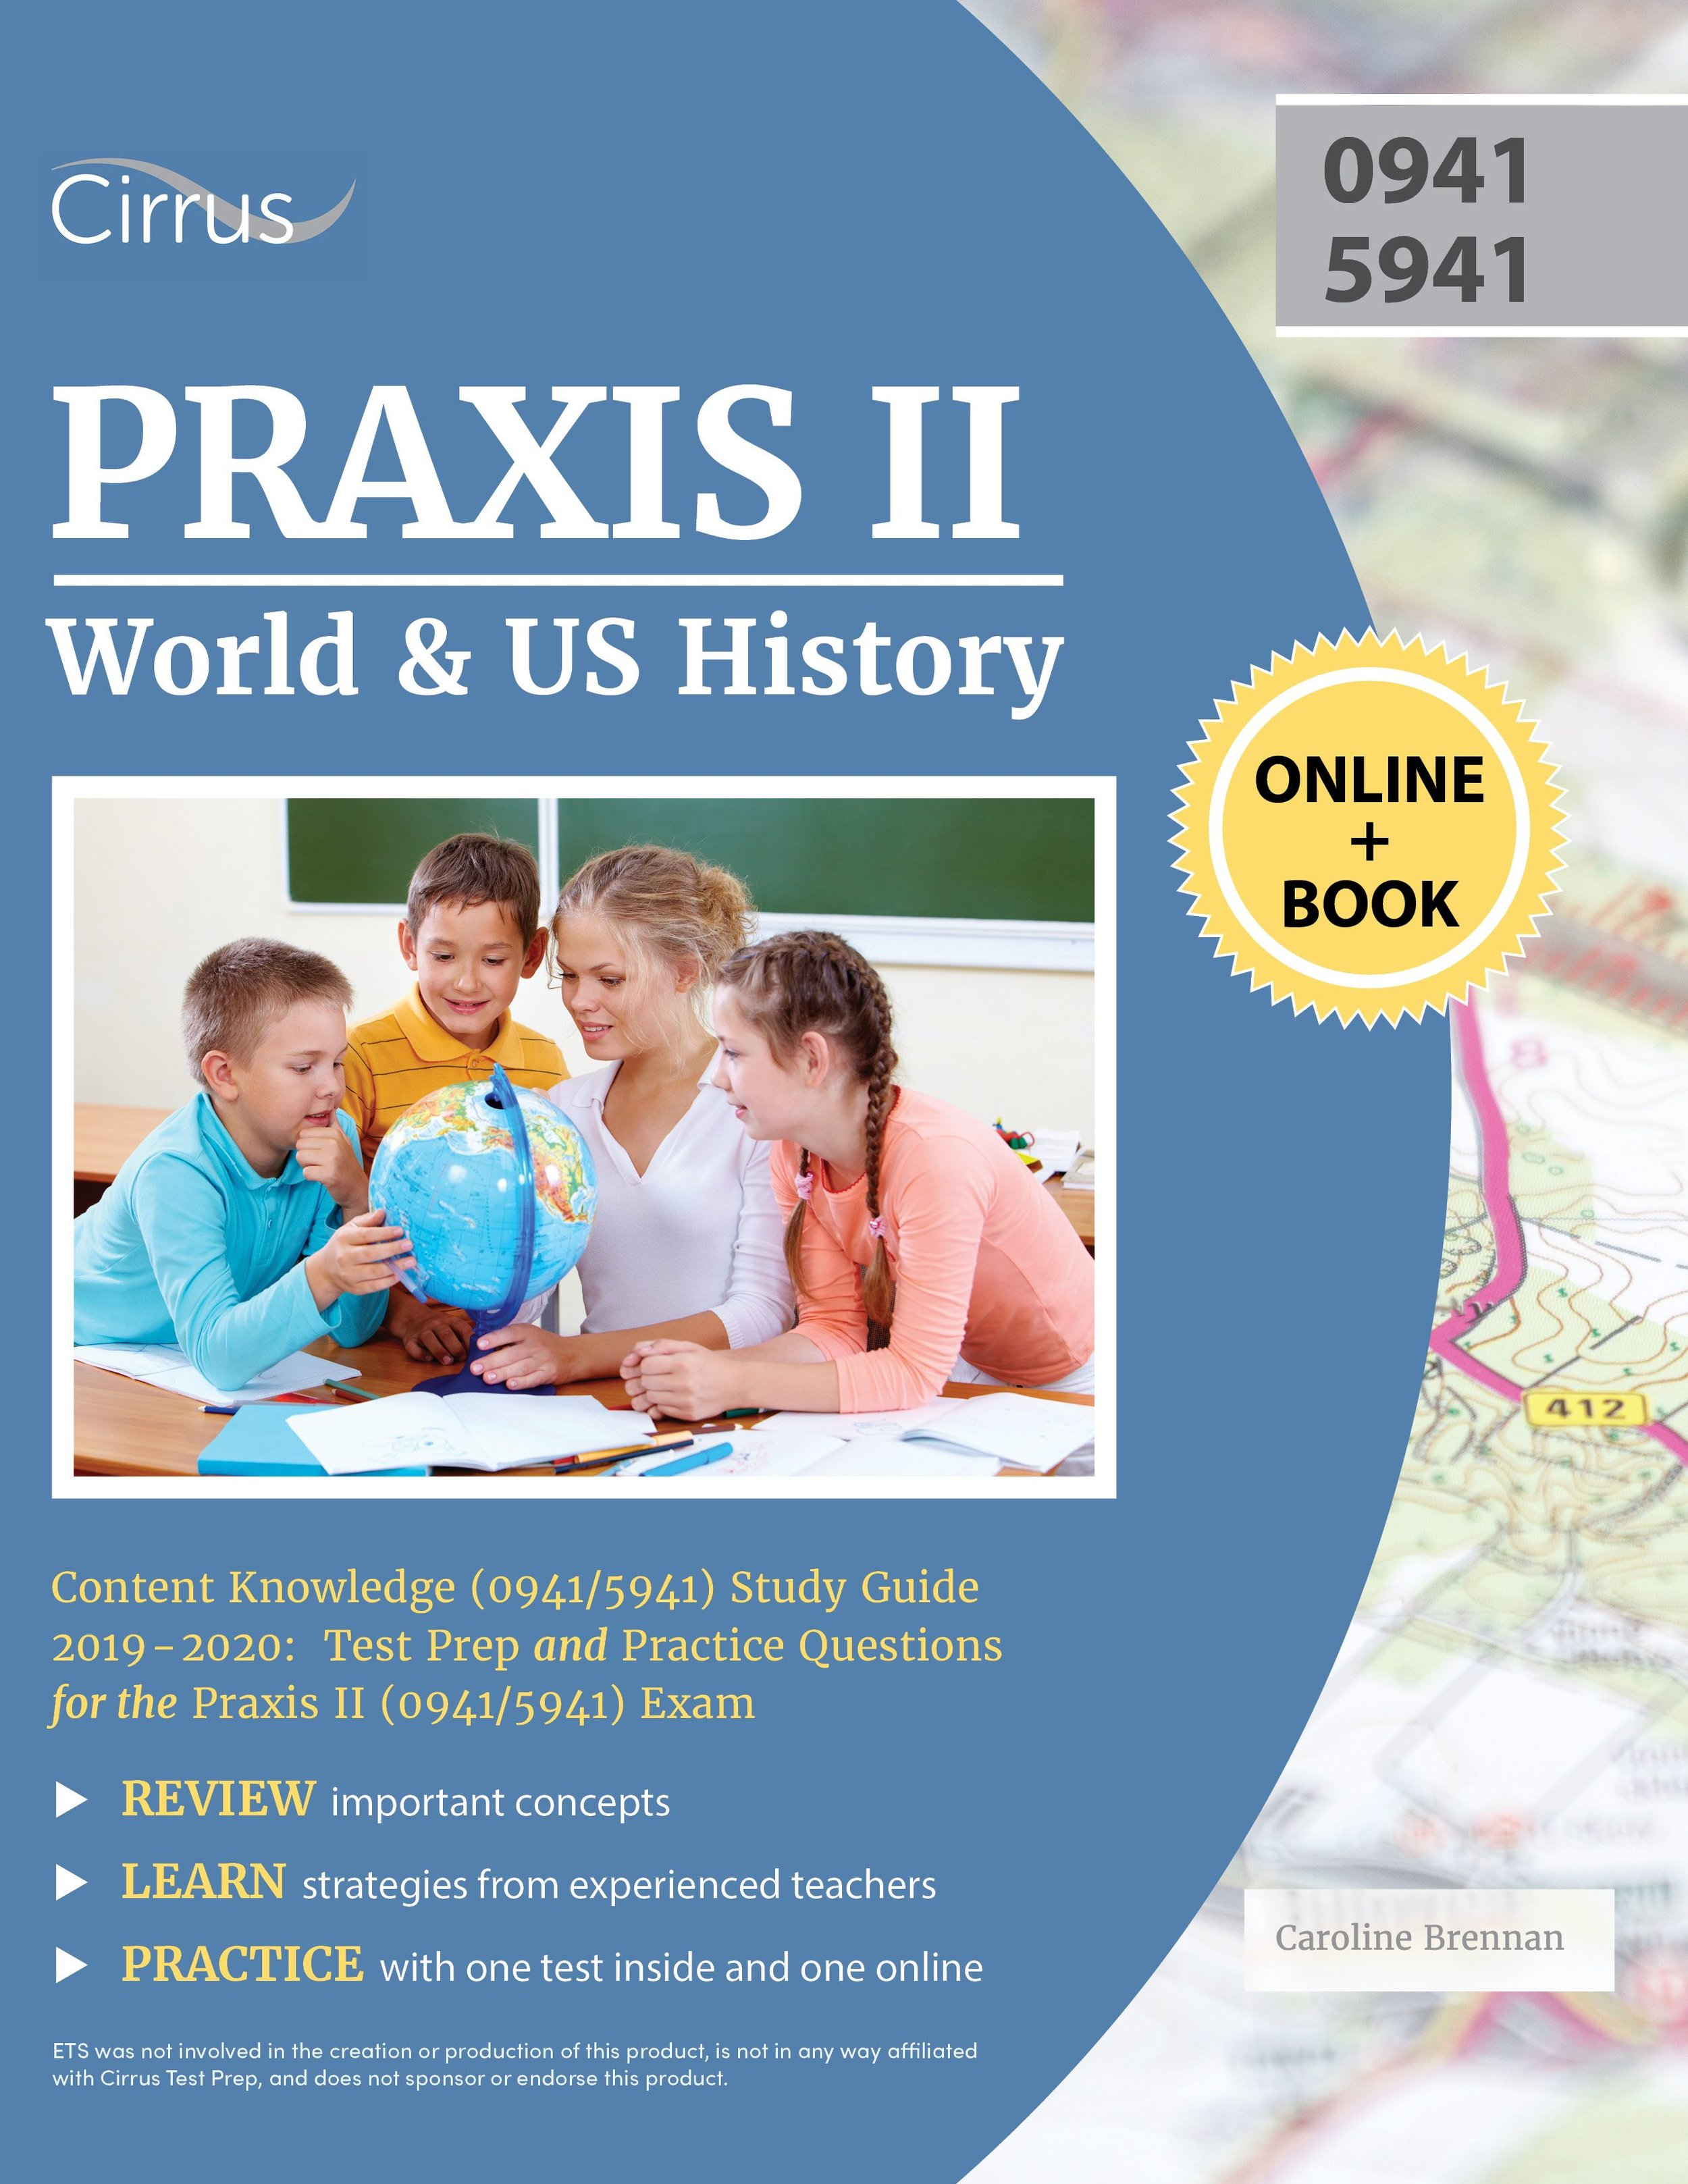 Praxis II World & U.S. History Content Knowledge 0941/5941 Study Guide 2019 – 2020